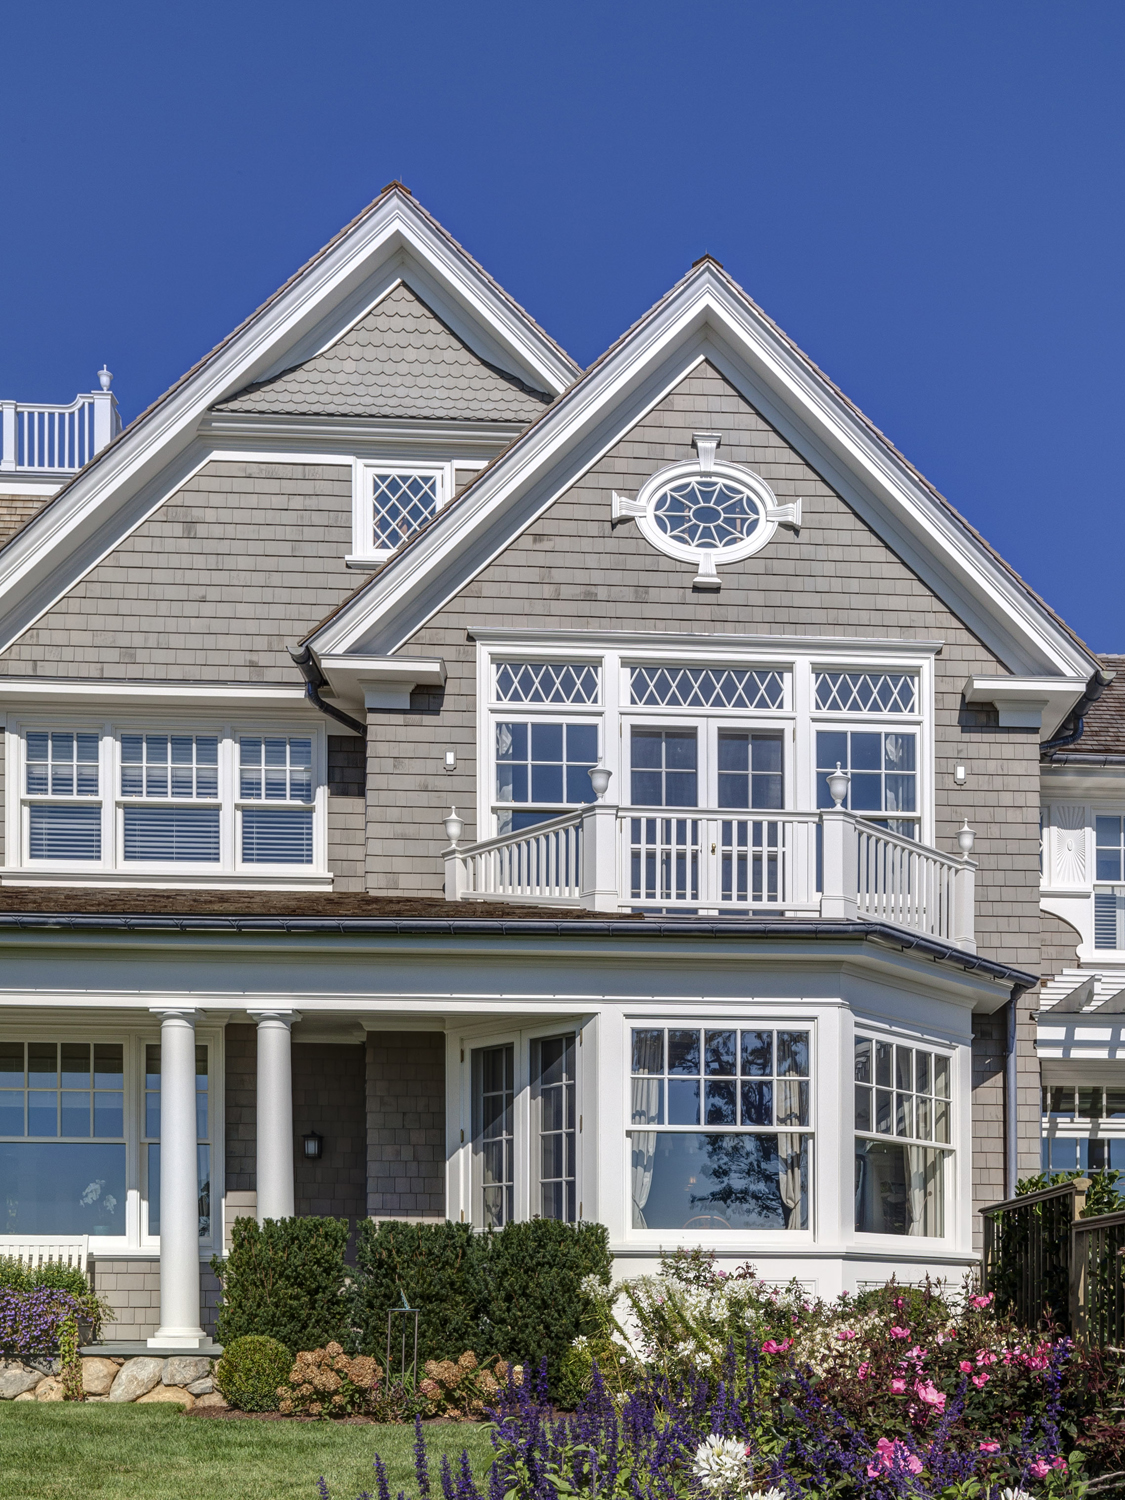 Waterfront-colonial-custom-mullion-windows-riverside-ct-exterior-w.jpg